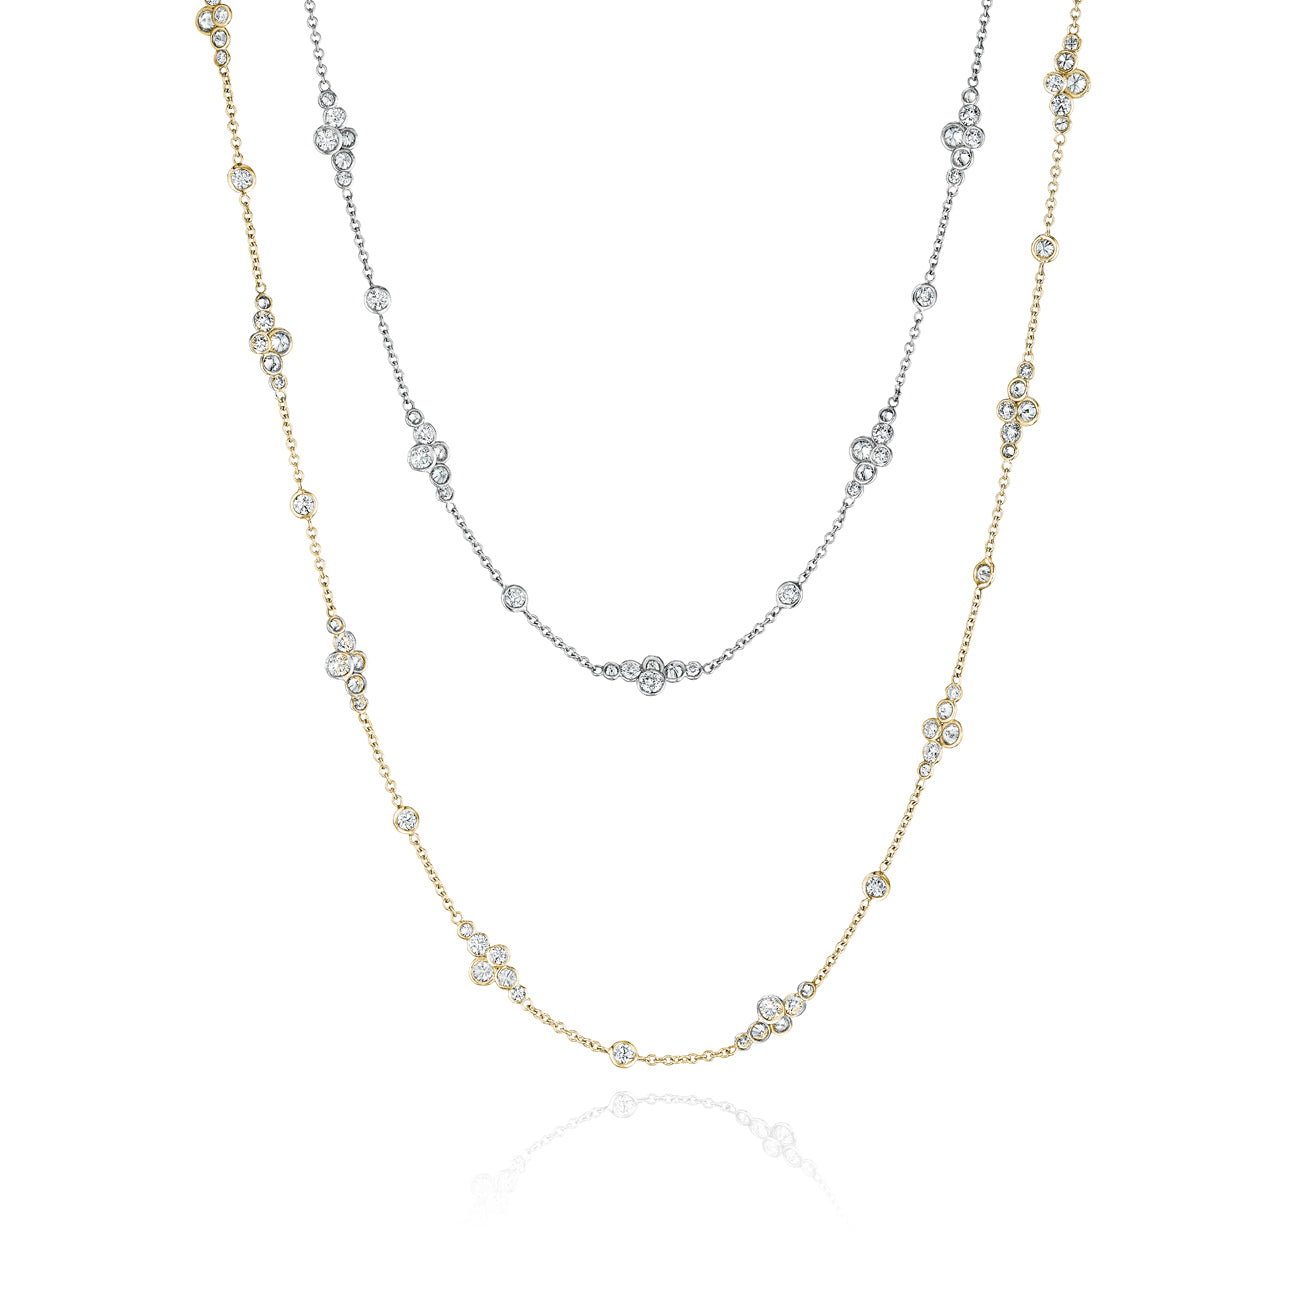 Pirouette™ Necklace Suite